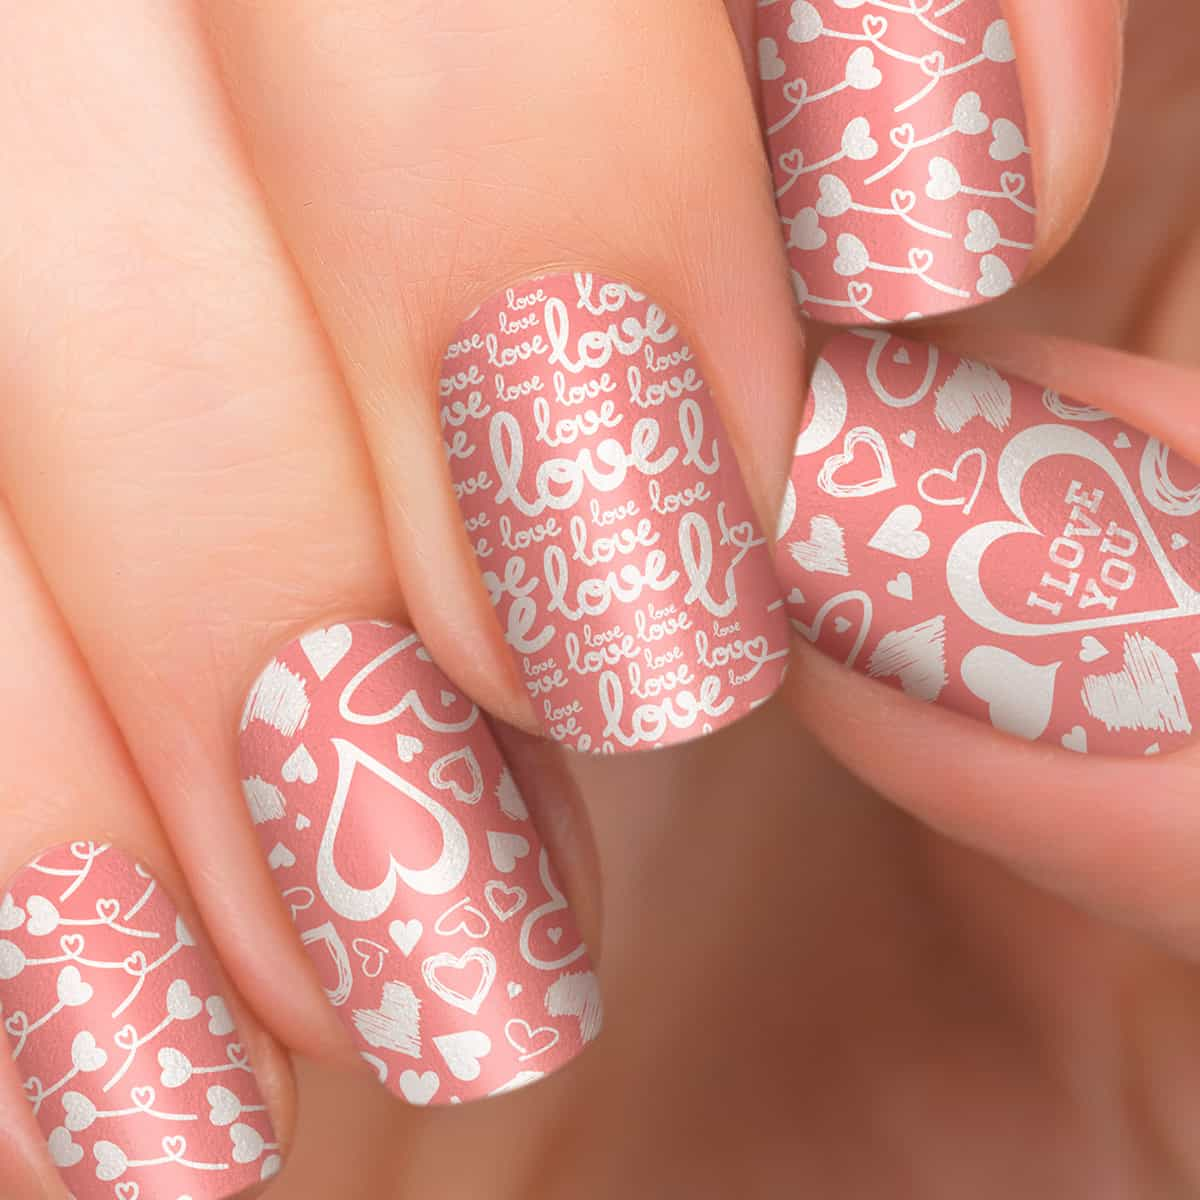 nail art designs - soft pink nail art with hearts